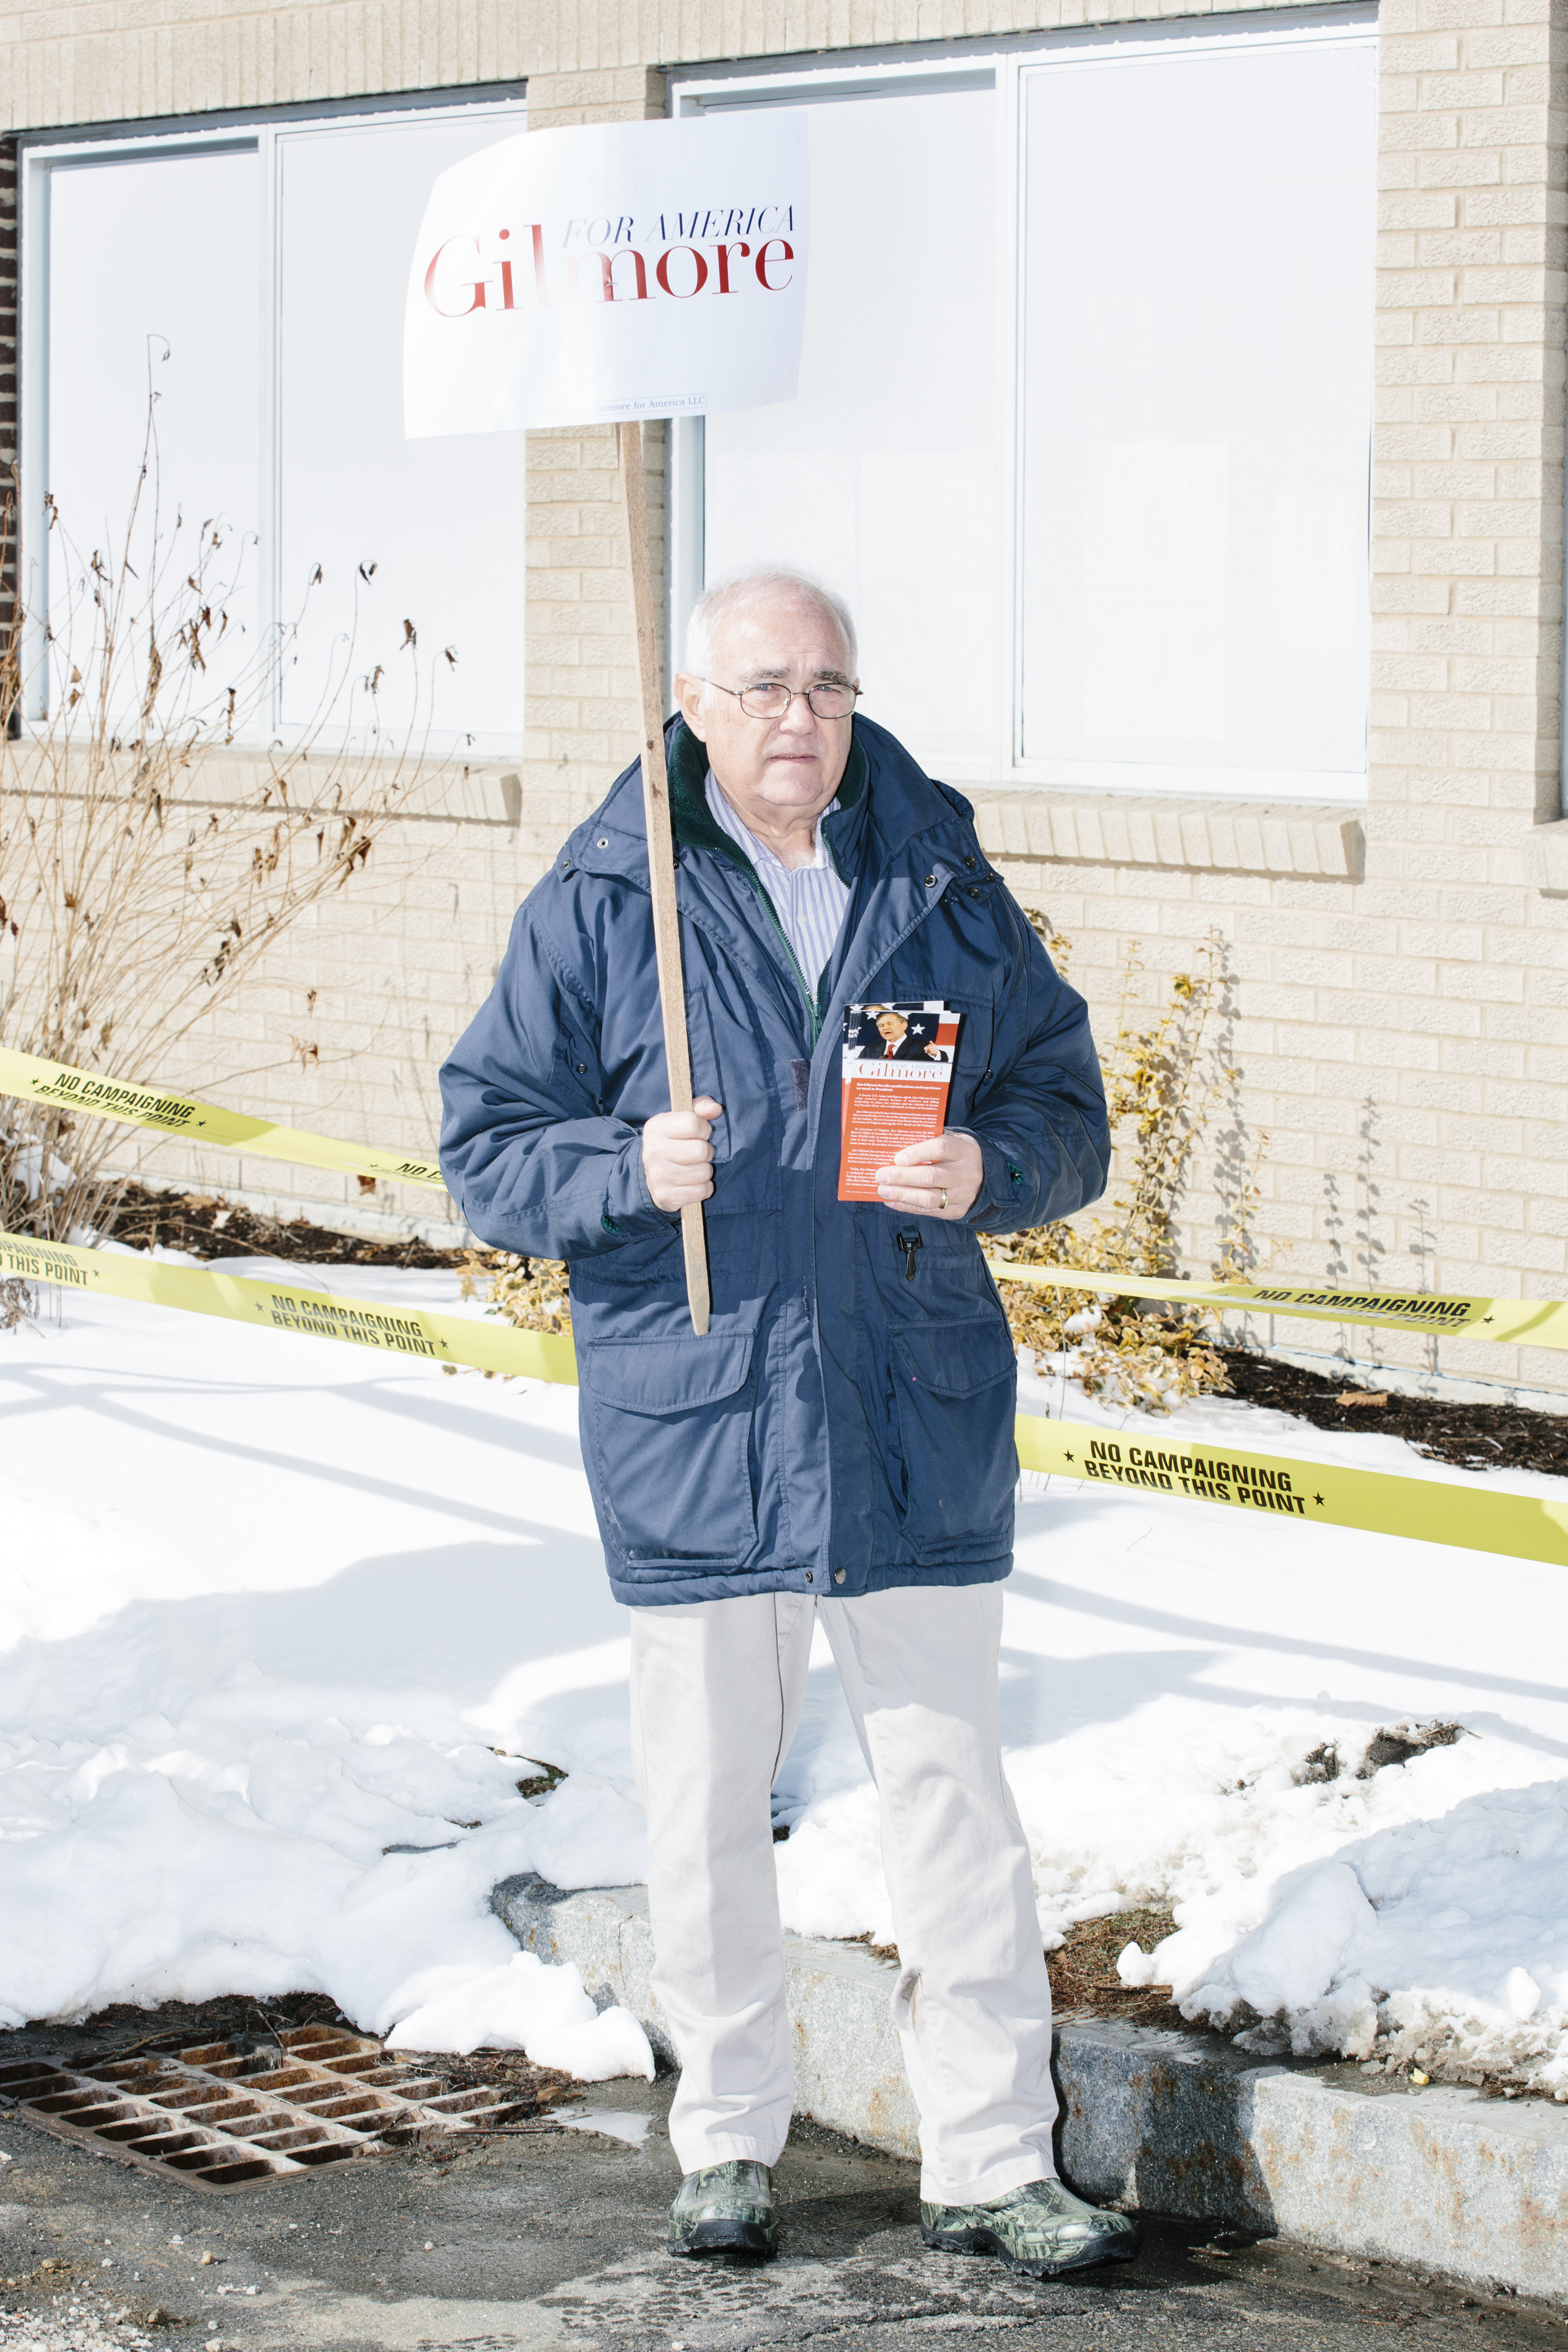 Lloyd Gatling, of Suffolk, Virginia, brother-in-law of former Virginia governor and Republican presidential candidate Jim Gilmore holds campaign signs for the candidate outside the polling location for Manchester Ward 2 at Hillside Middle School in Manchester, New Hampshire, on the day of primary voting, Feb. 9, 2016.